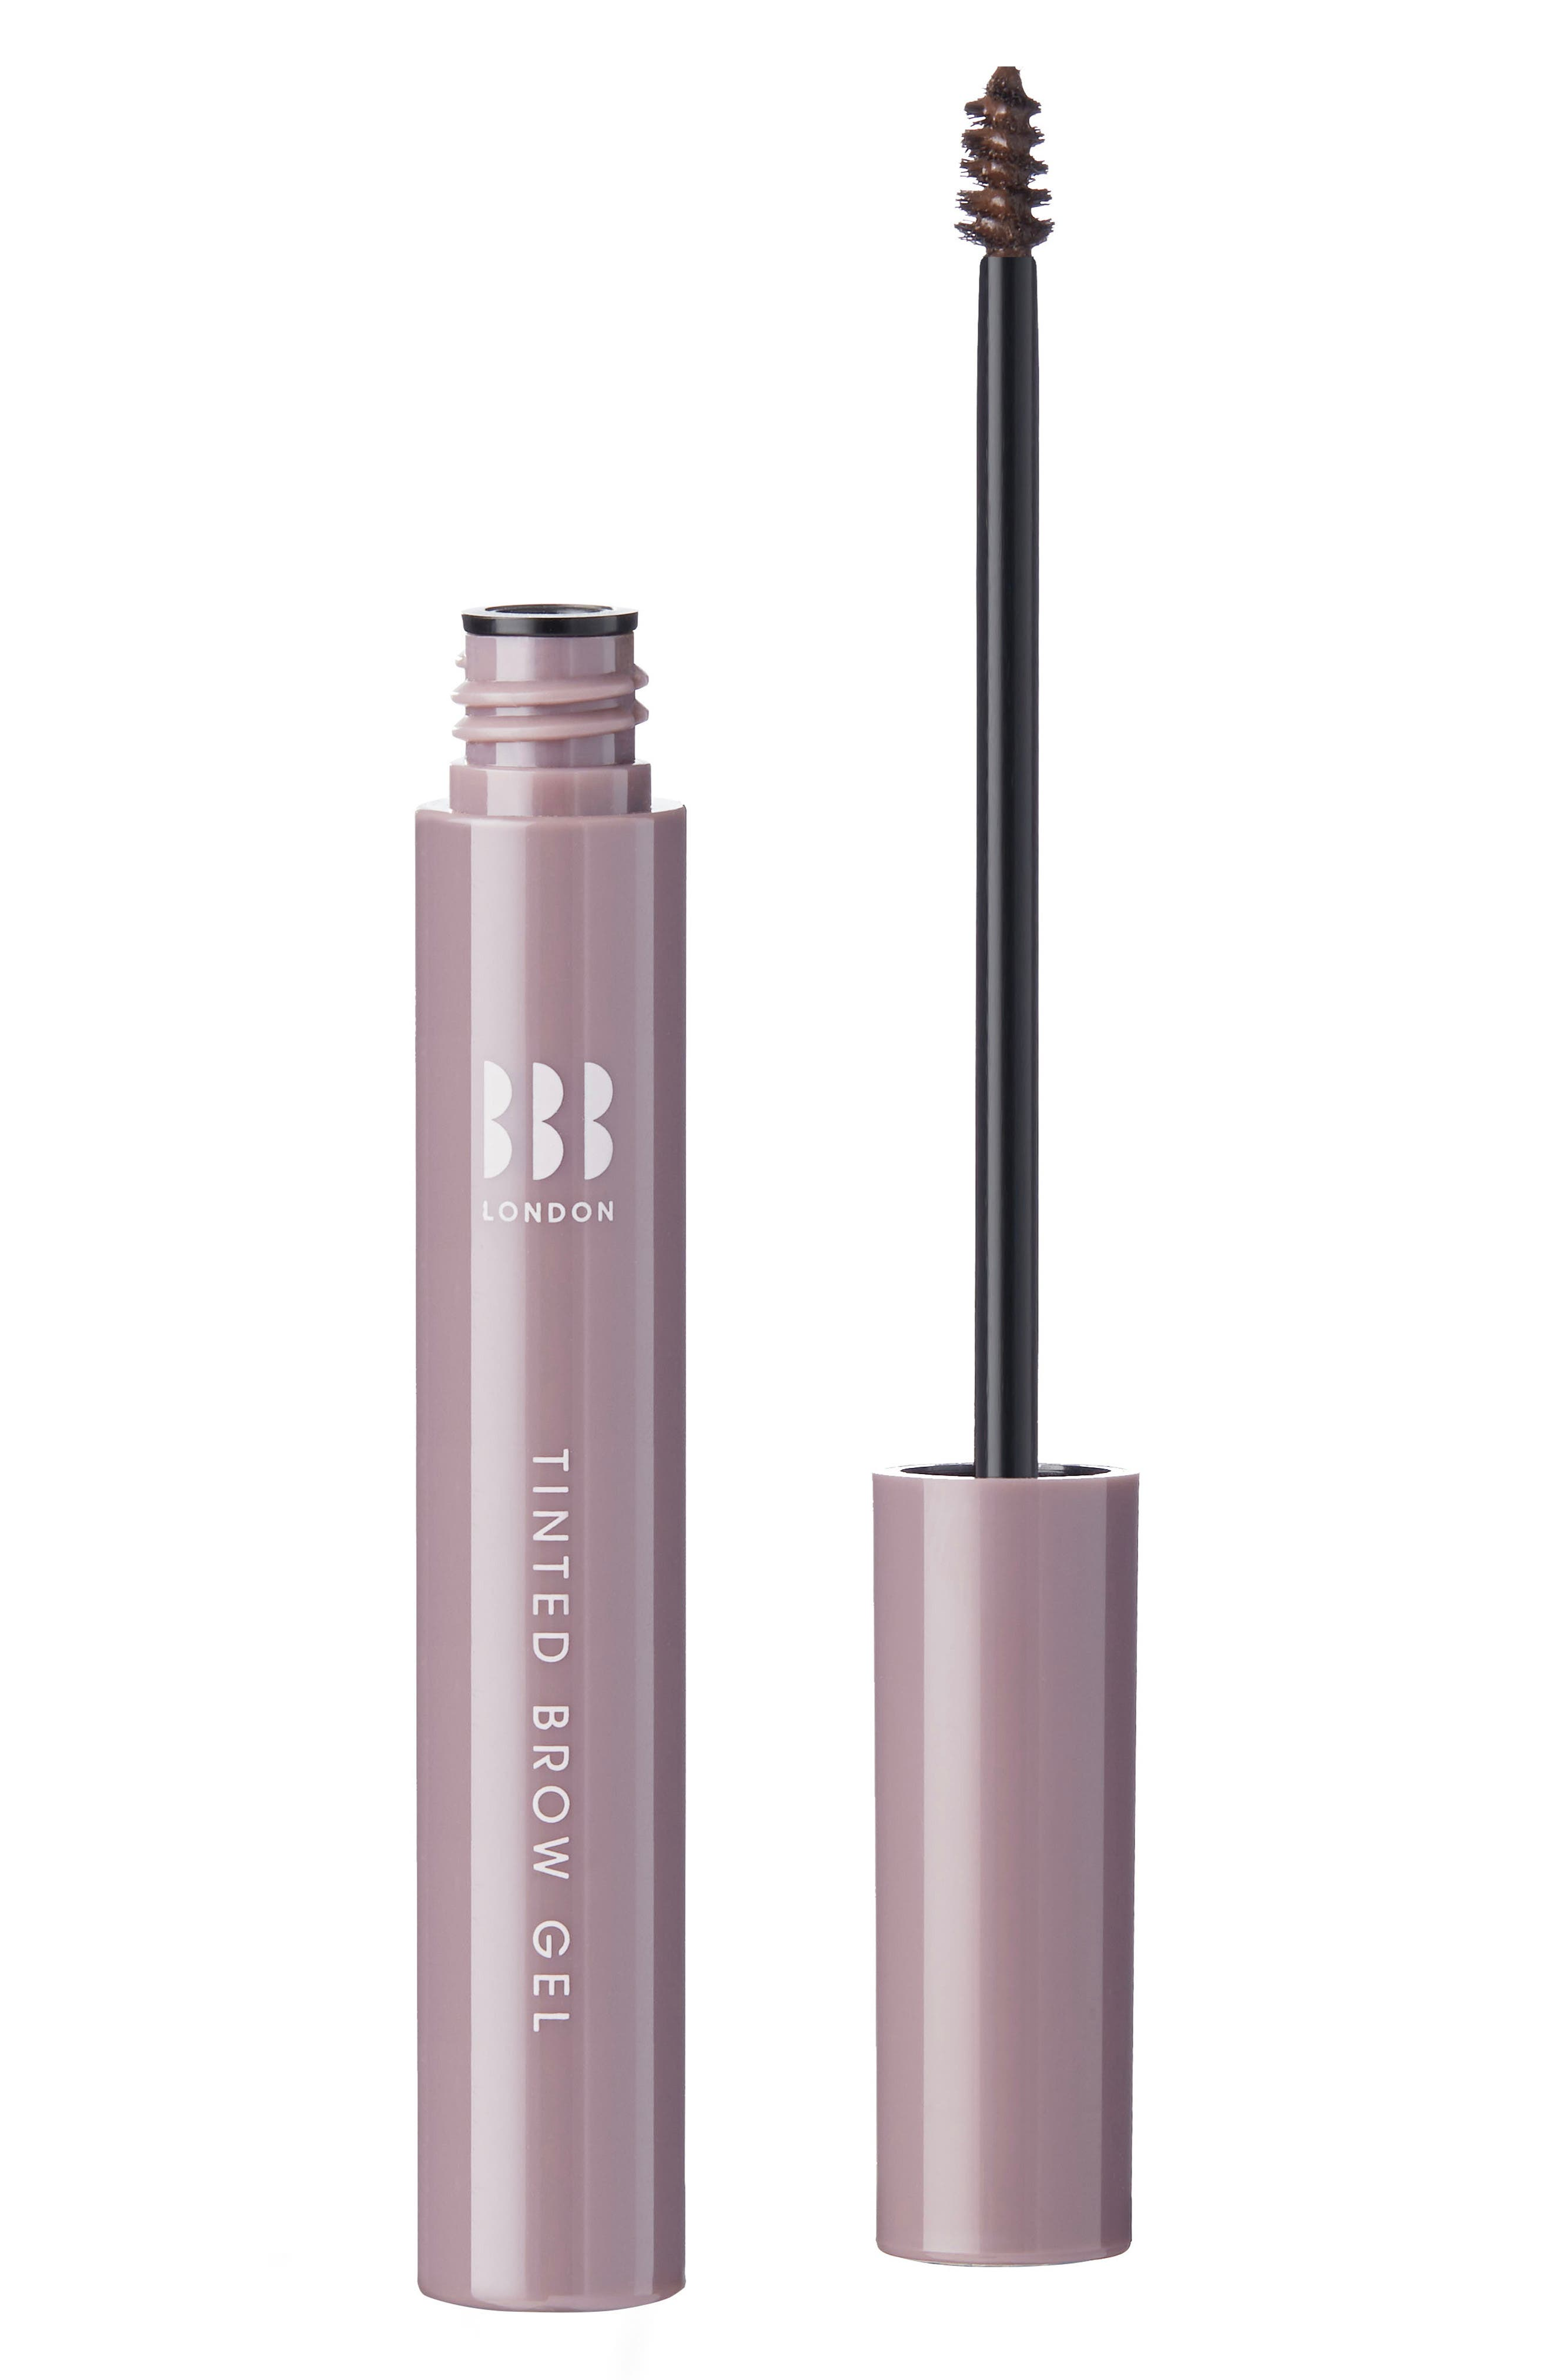 BBB London Tinted Brow Gel in Clove at Nordstrom